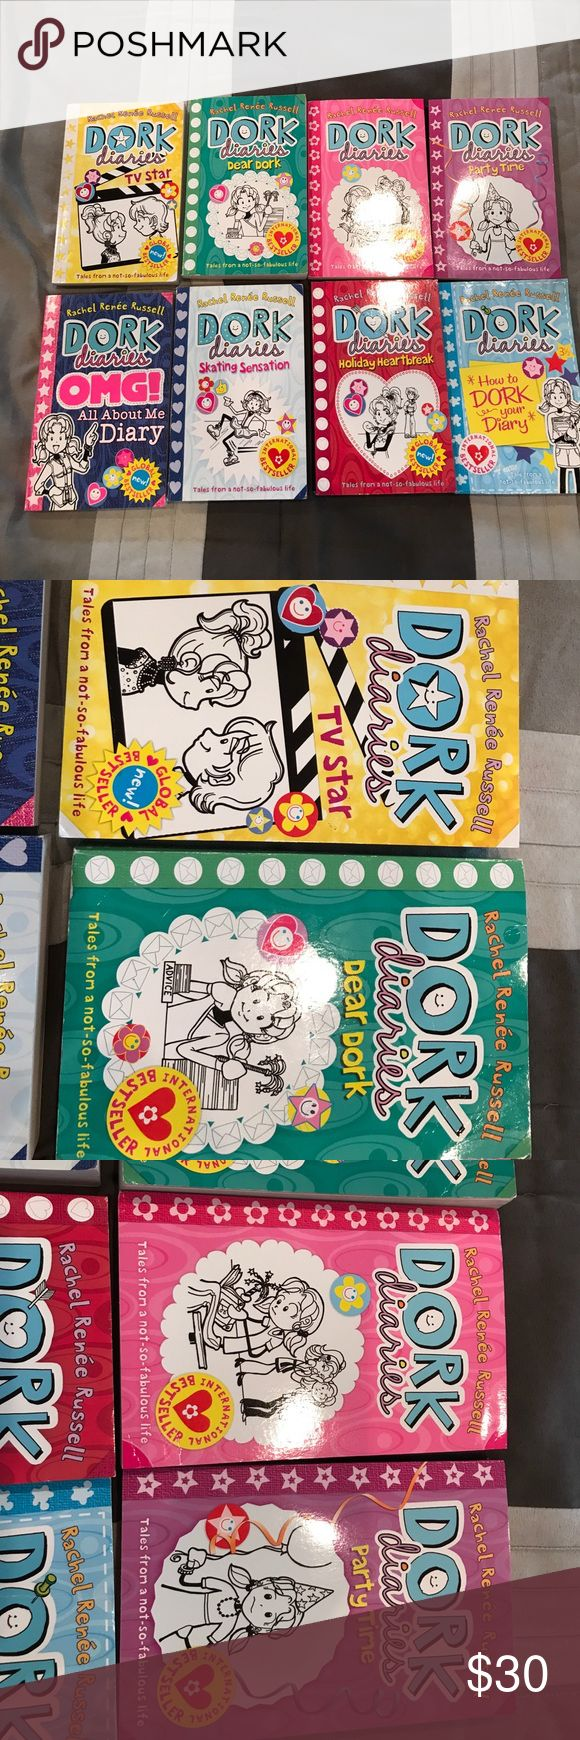 Dork diaries set of eight softback books Kids books dork diaries, dork diaries oh my God all about my diary, dork diaries dear dork, dork diaries skating sensation, dork  diaries holiday heart break, dork diaries TV star, dork diaries, dork diaries how to dork your diary, dork diaries party time all books are by Rachel Renée Russell. International bestseller's no mason torn pages books are in great condition dork diaries Other